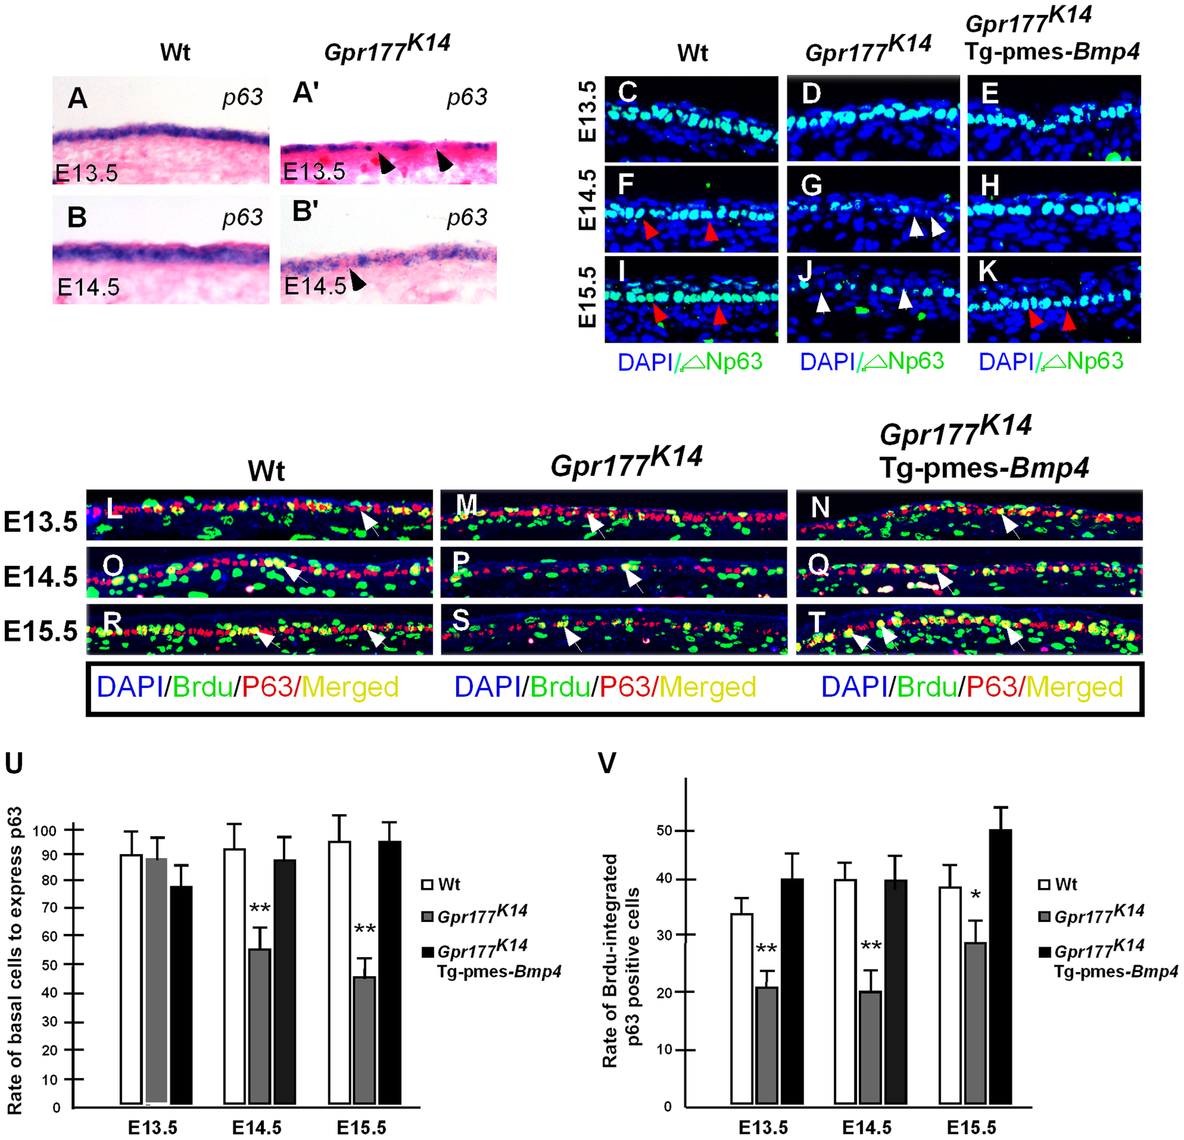 Transgenically expressed <i>Bmp4</i> in <i>Gpr177<sup>K14</sup></i> mutants rescued the defective p63 expression.